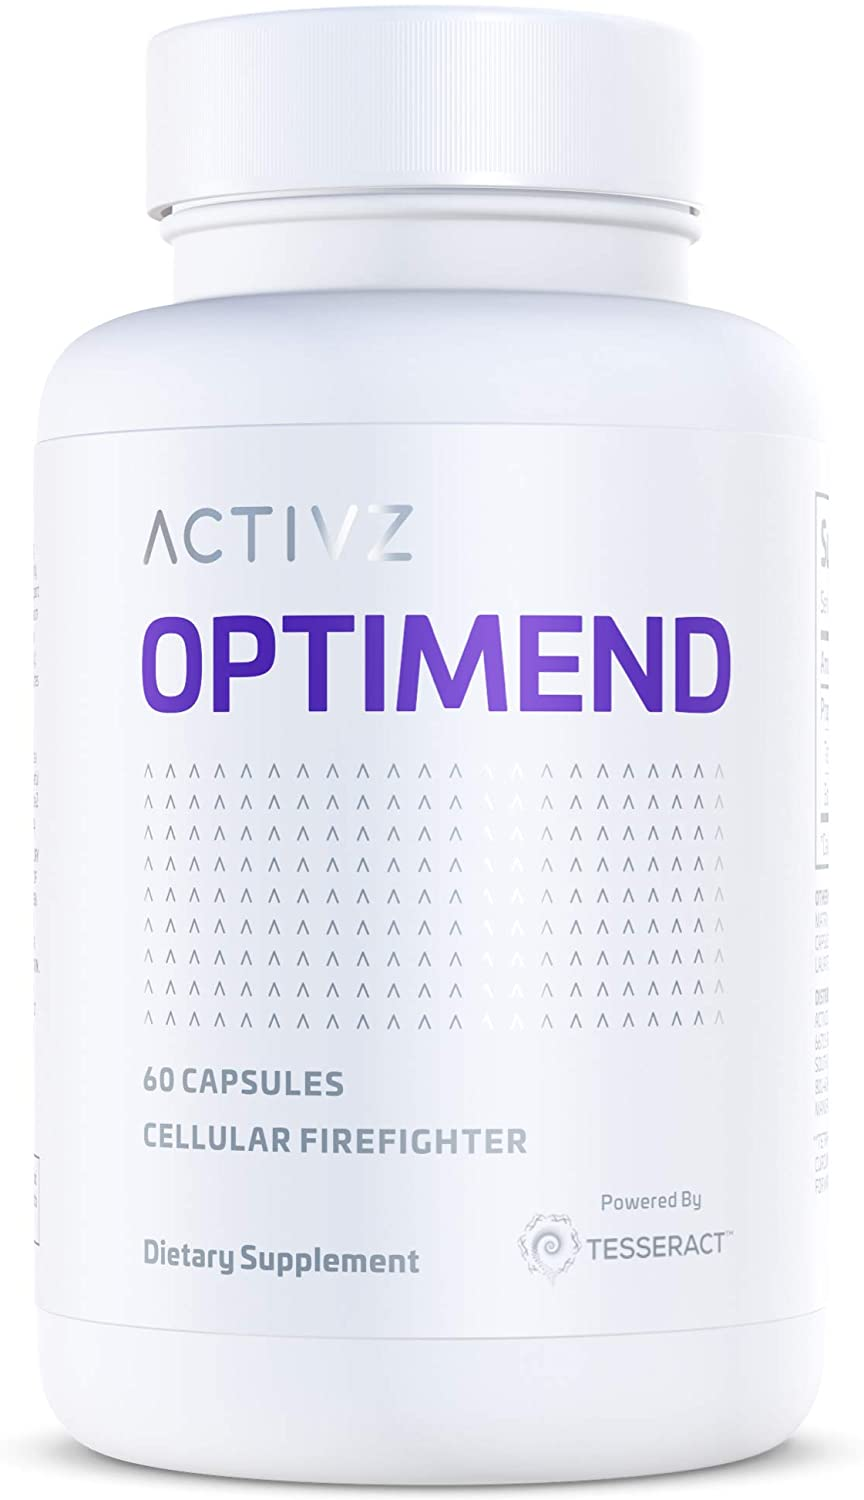 ACTIVZ OPTIMEND - Cellular Firefighter - Patented Delivery System Provides Maximum Absorption - 95% Tetrahydrocurcuminoids Most Active Turmeric Root Sourced Curcuminoid (60 Capsules, 1 Month Supply)